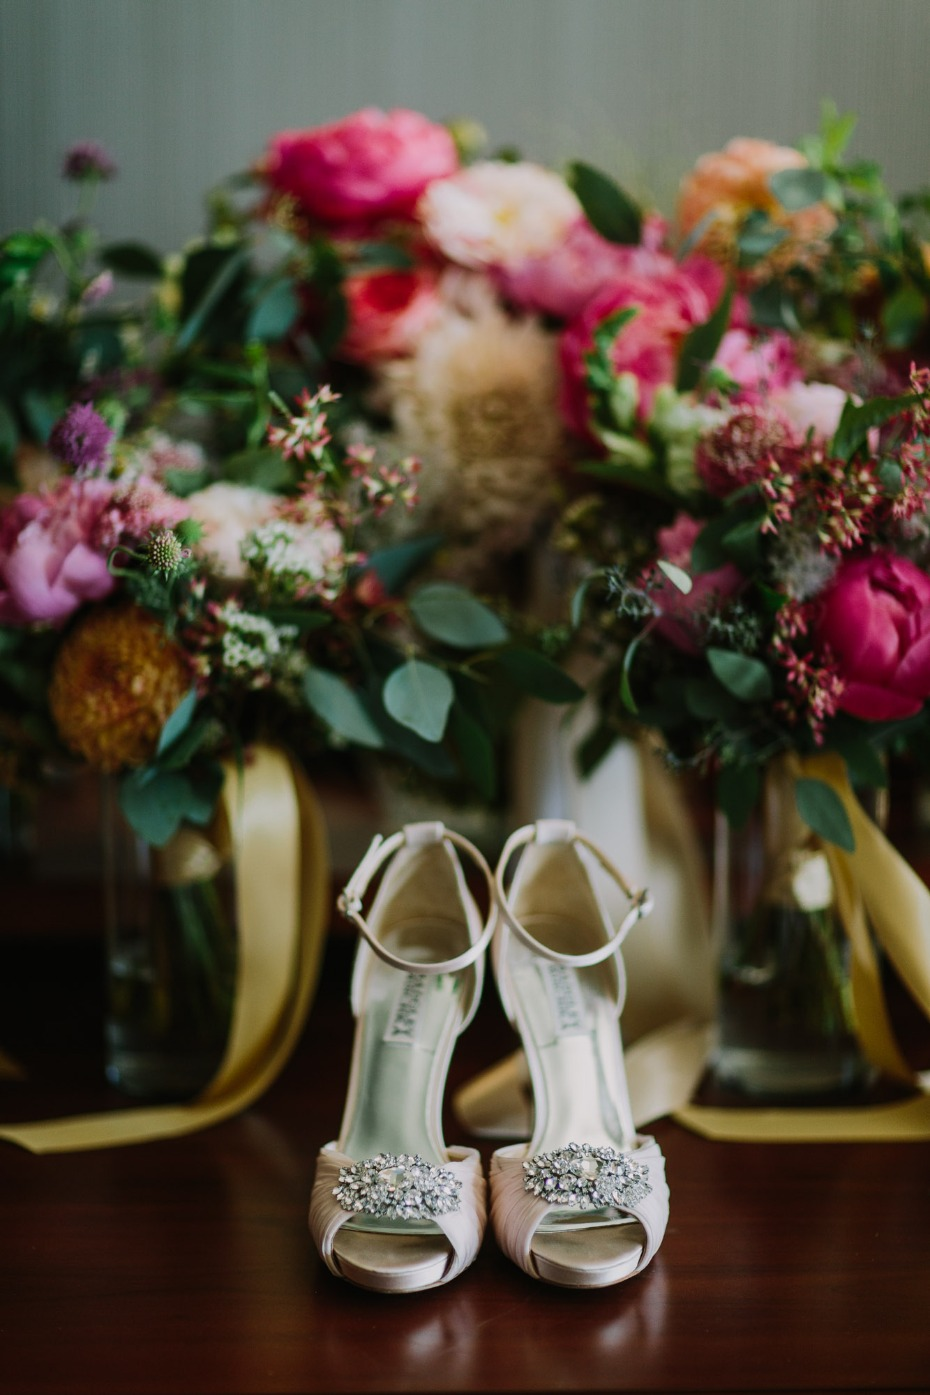 Badgley Mischka heels for the bride